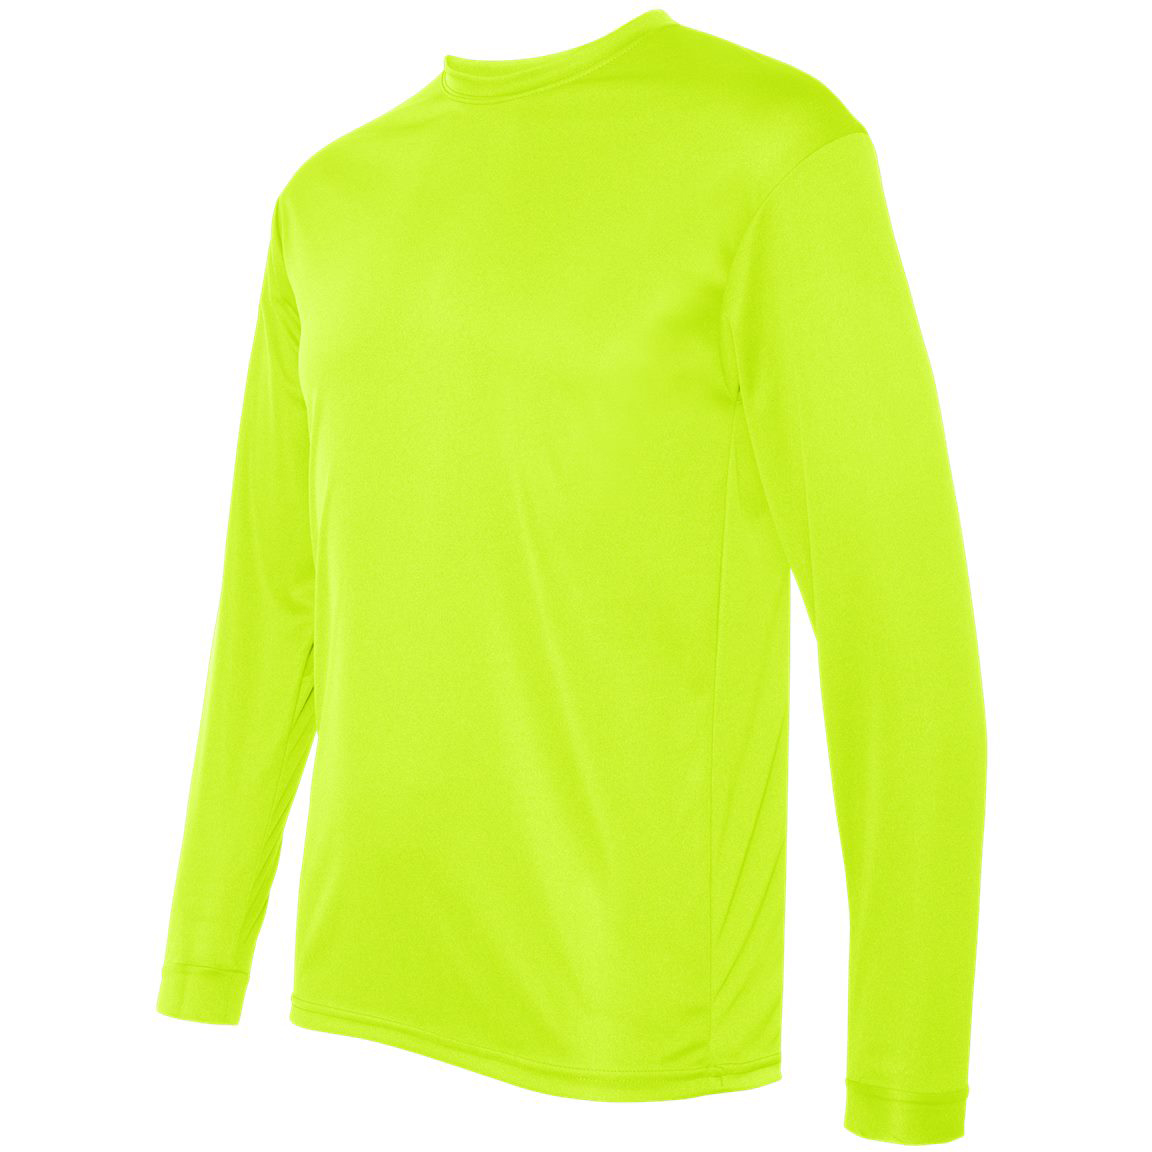 C2 sport 5104 performance long sleeve t shirt safety for Yellow long sleeved t shirt